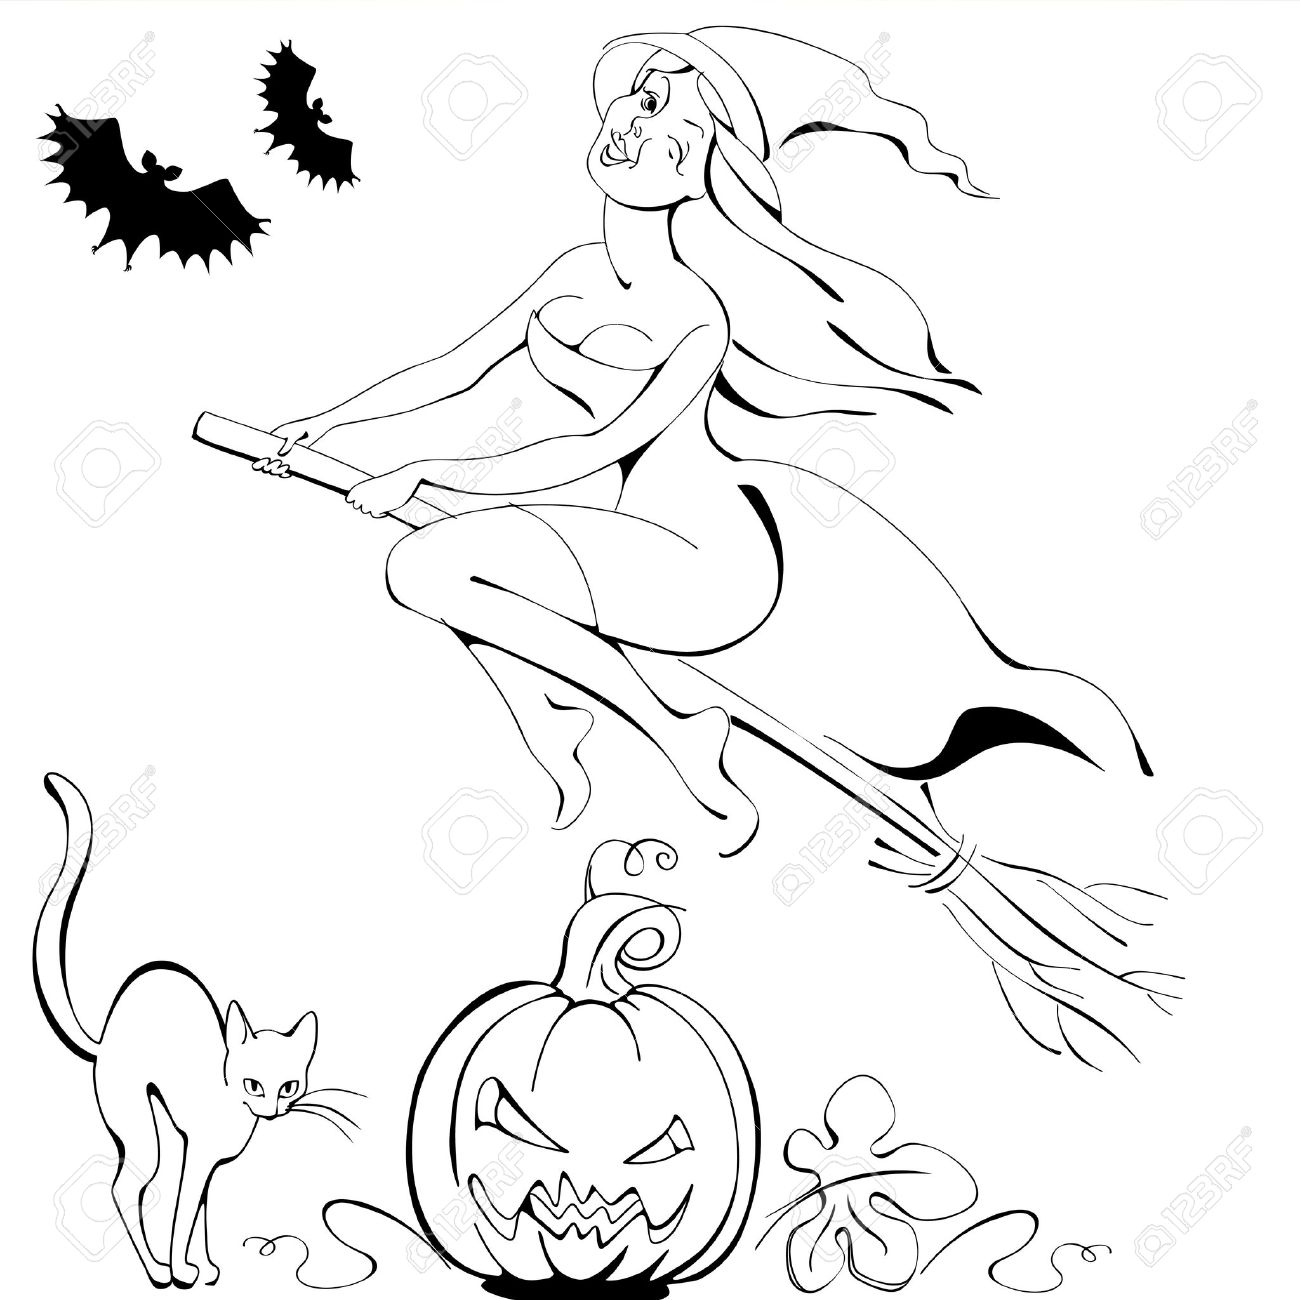 1300x1300 Halloween Symbol Black And White Silhouettes Pumpkin,cat, Bat